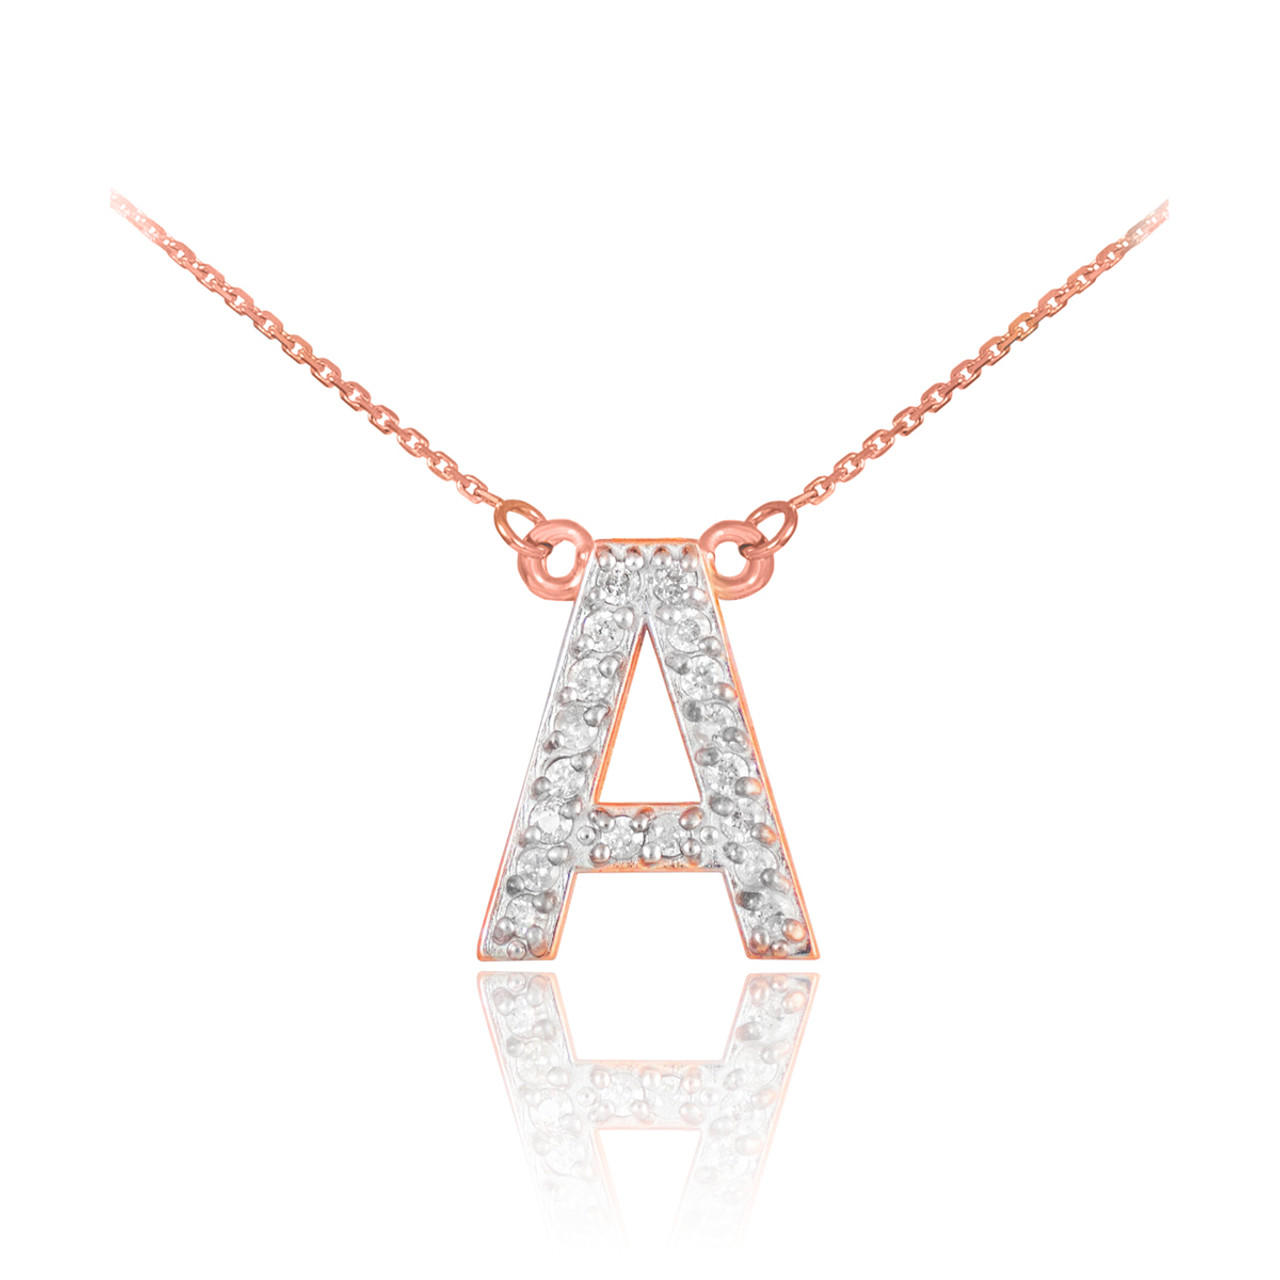 14k rose gold letter a initial diamond monogram necklace 14k rose gold letter a diamond initial monogram necklace aloadofball Gallery